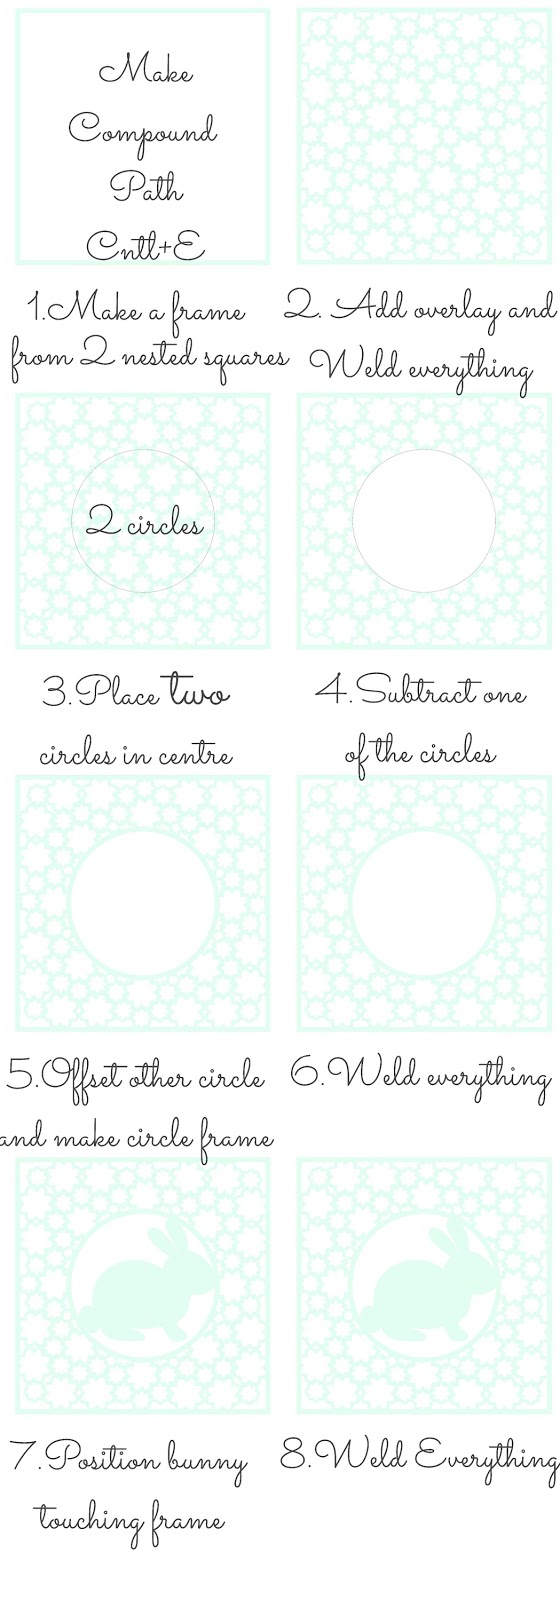 Filigree fill step my step Silhouette tutorial by Nadine Muir for Silhouette UK blog